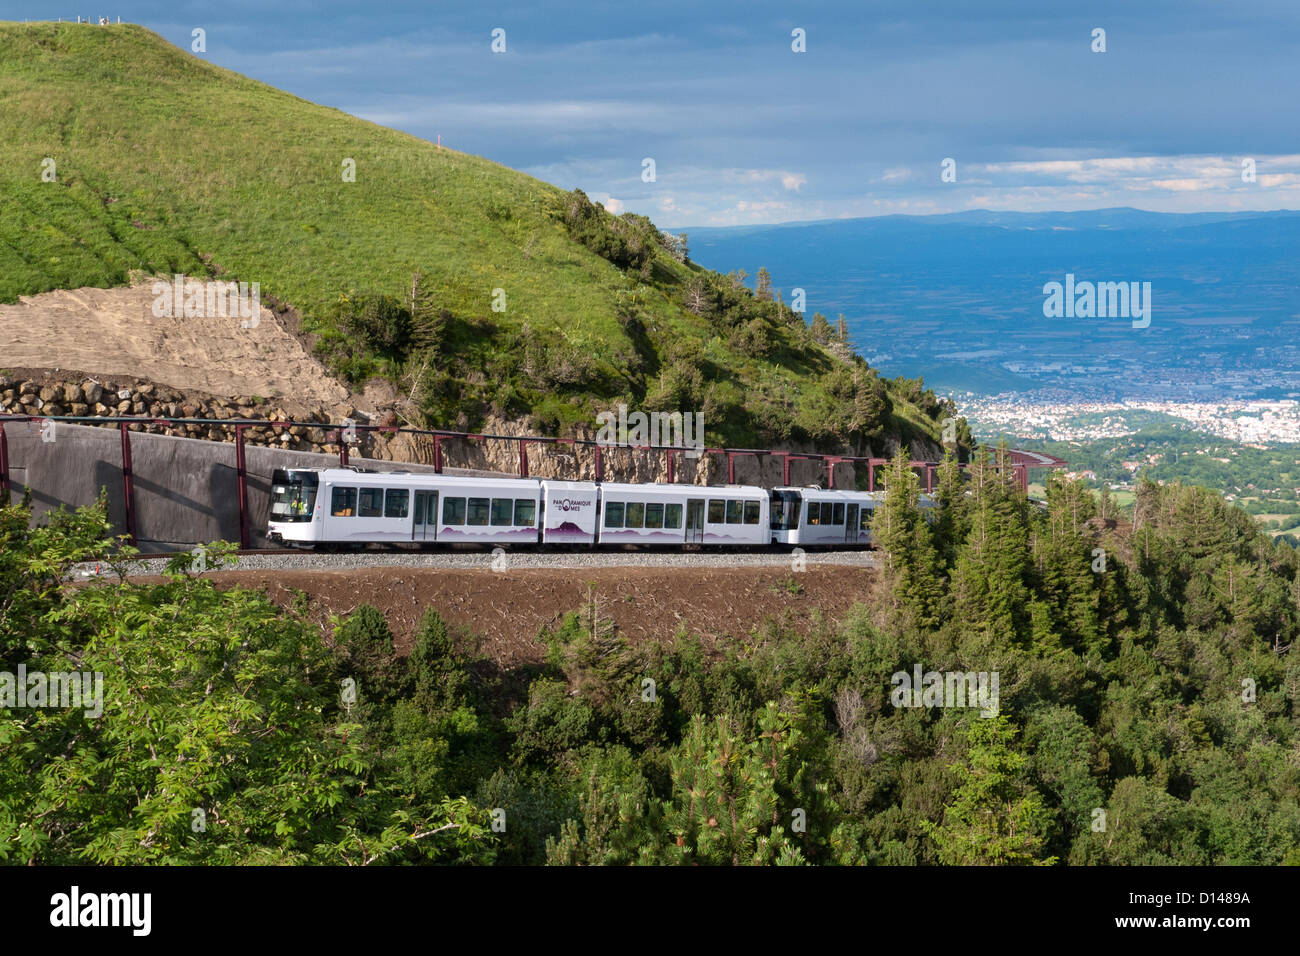 New Panoramique des dome electric cog railway, train arriving at the top of Puy de dome volcano, Auvergne, France - Stock Image